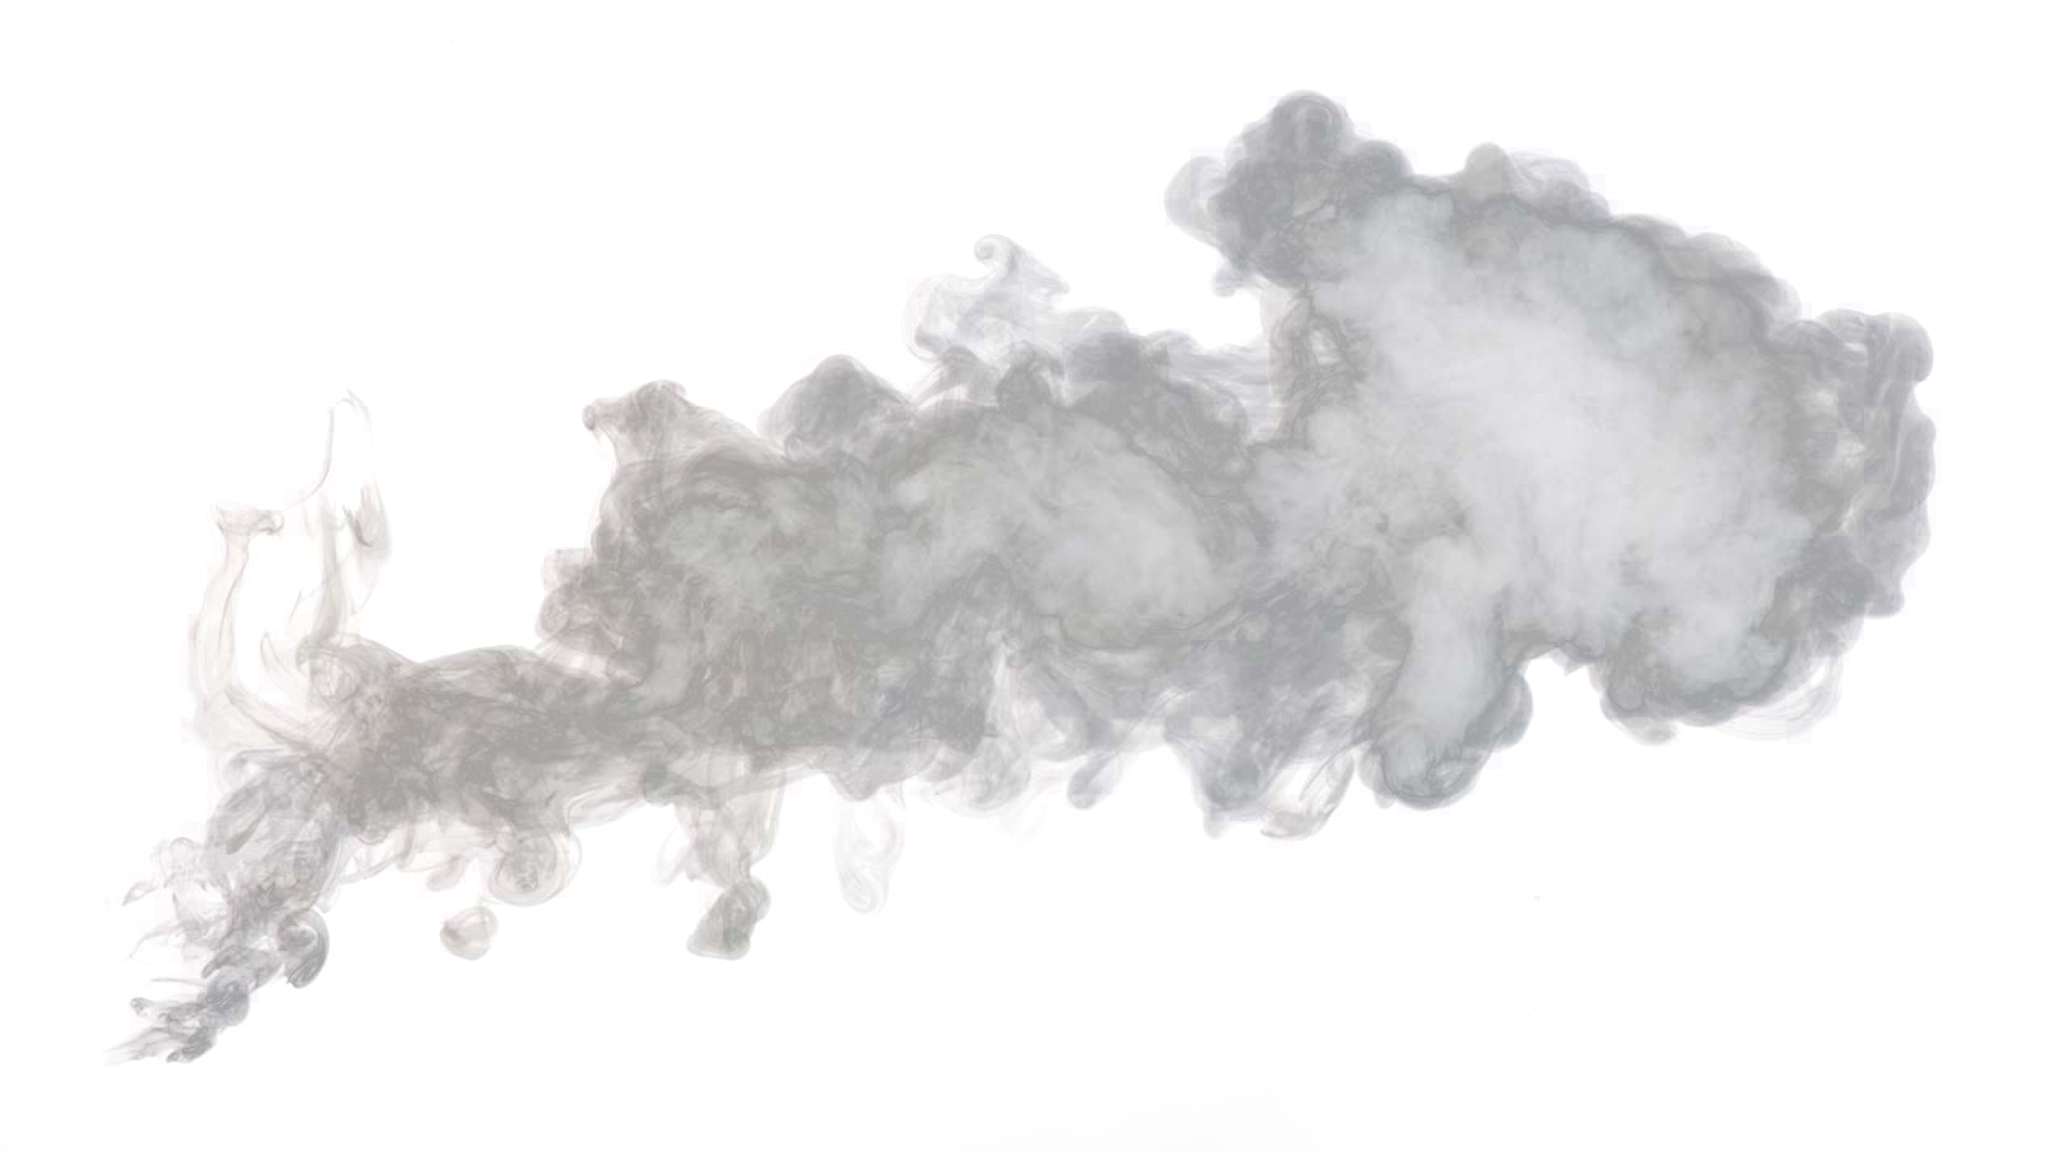 Tire smoking png. Smoke image free download